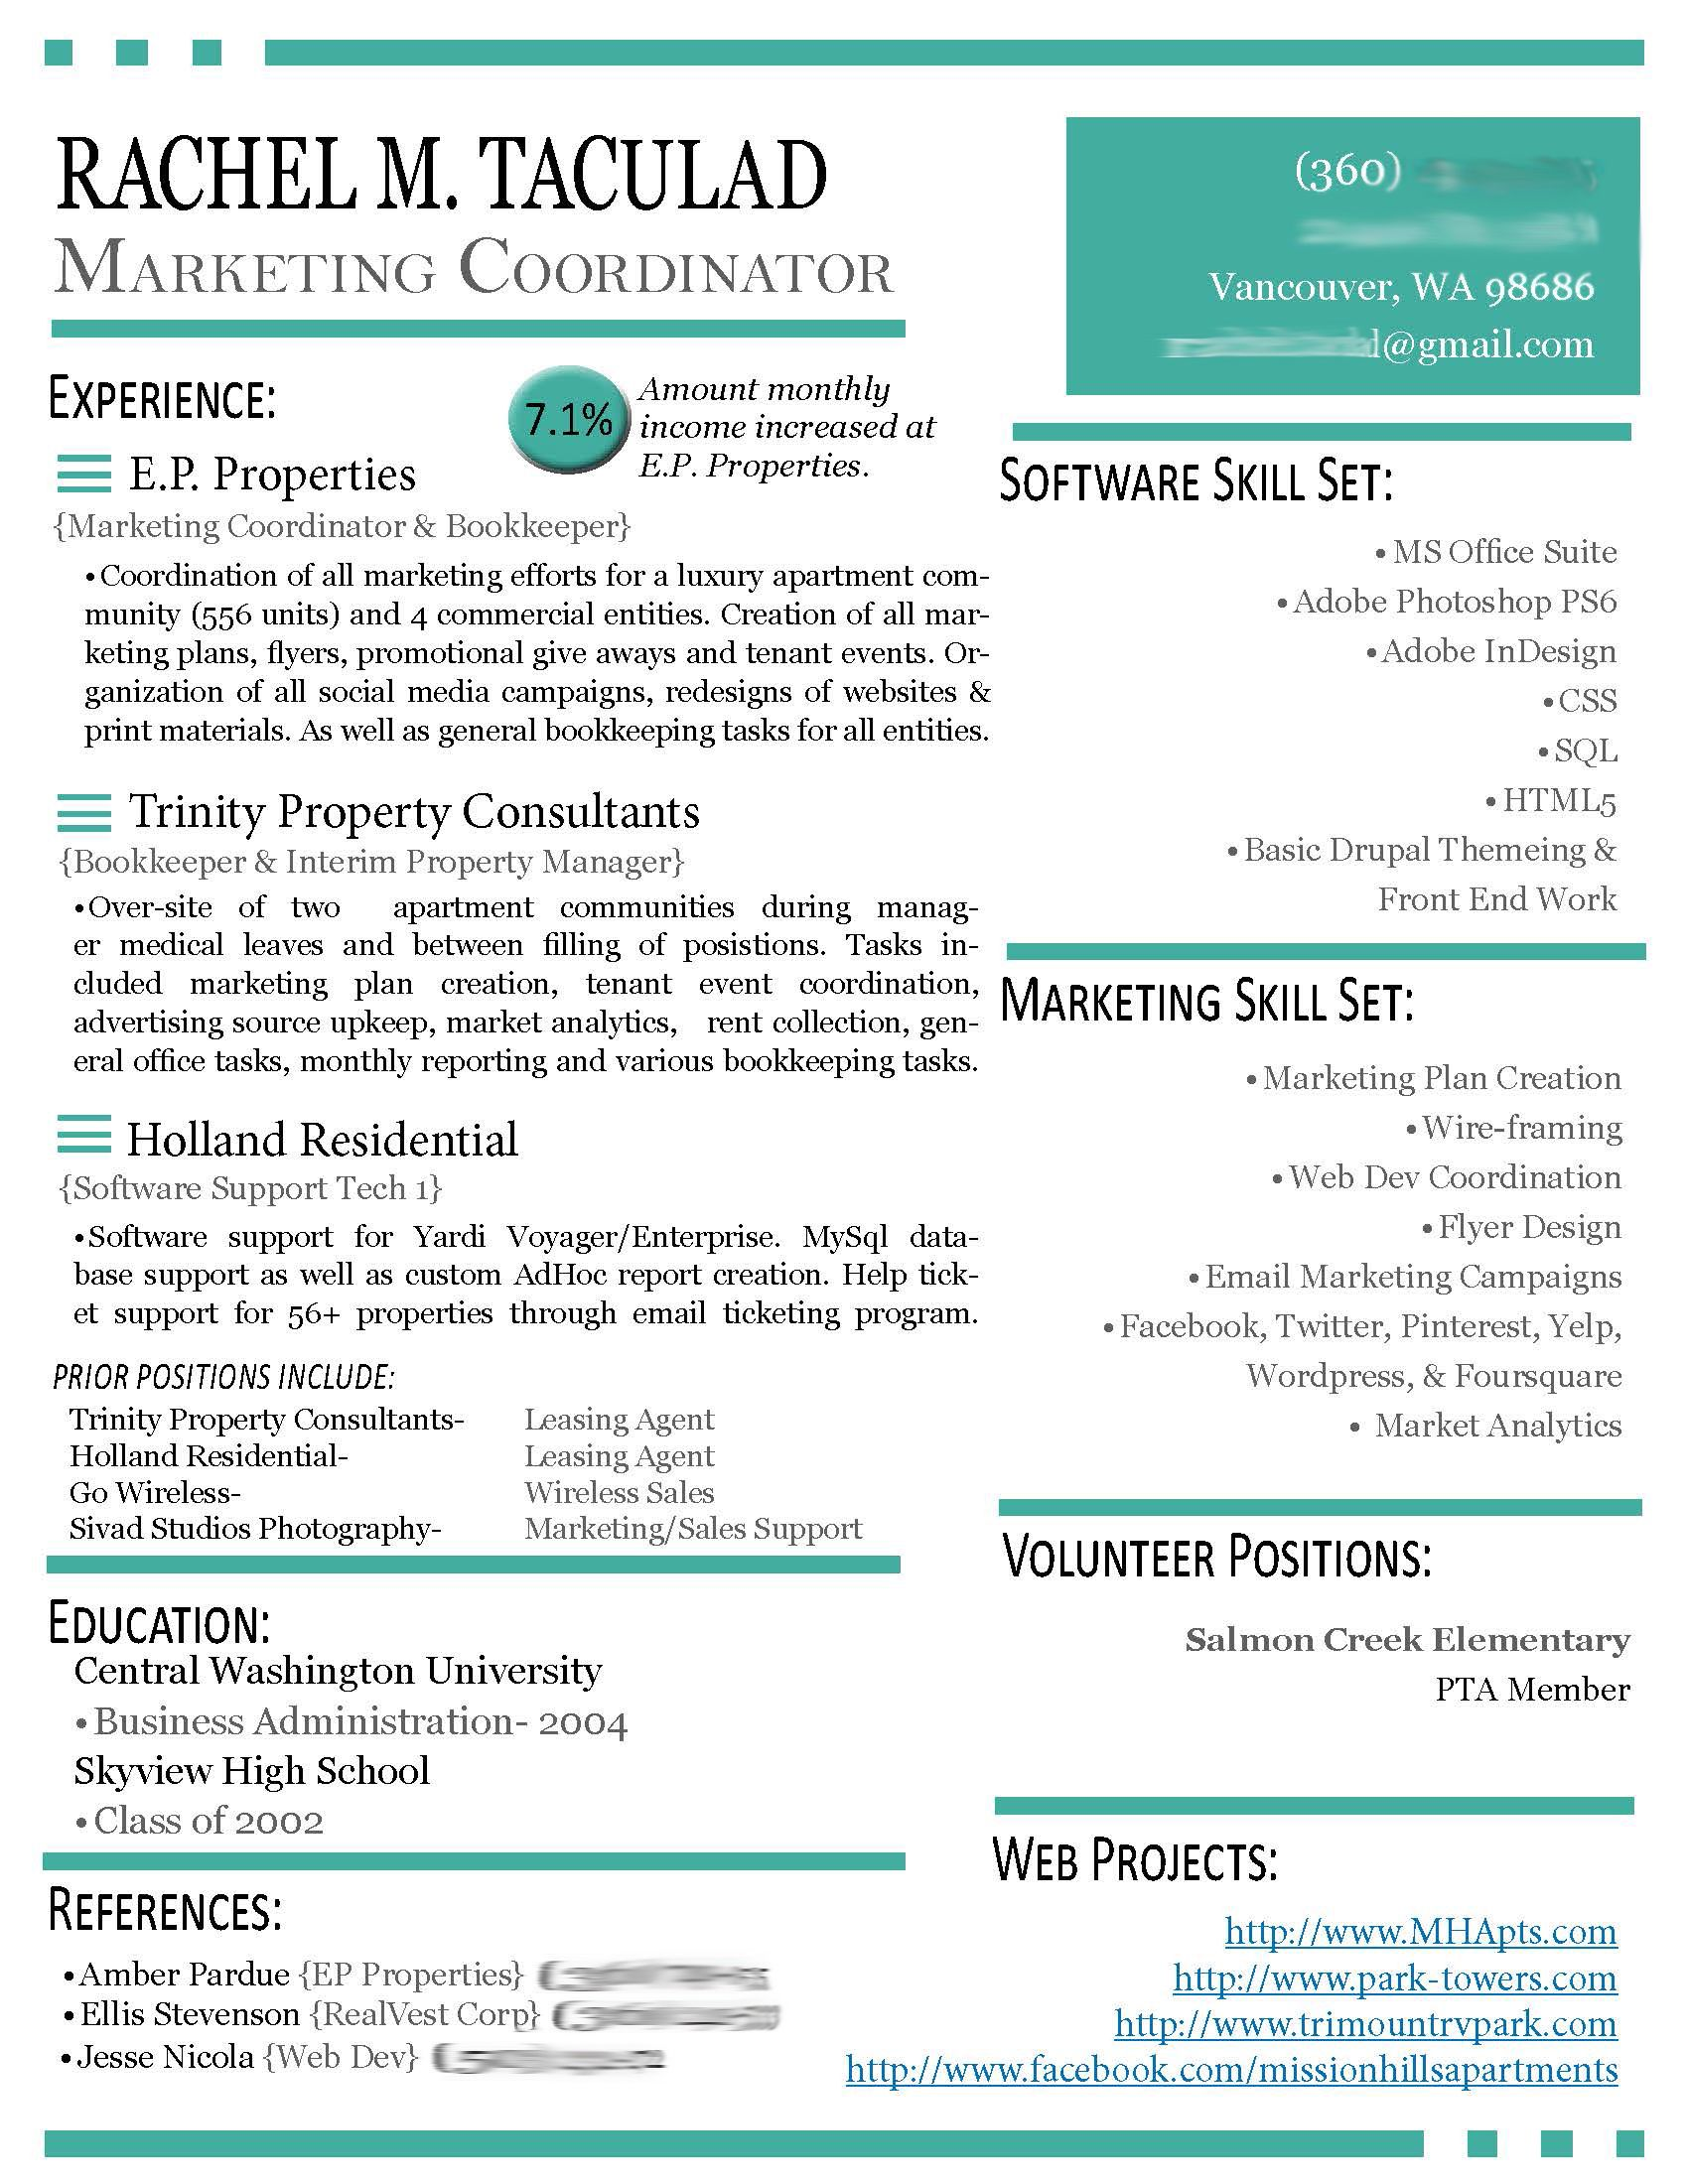 Opposenewapstandardsus  Ravishing  Images About Work Stuff On Pinterest  Resume Professional  With Hot  Images About Work Stuff On Pinterest  Resume Professional Resume Template And Resume Templates With Beautiful Resume For Property Manager Also College Resume Outline In Addition High School Student Resume Sample And Construction Skills Resume As Well As Office Administration Resume Additionally Paralegal Sample Resume From Pinterestcom With Opposenewapstandardsus  Hot  Images About Work Stuff On Pinterest  Resume Professional  With Beautiful  Images About Work Stuff On Pinterest  Resume Professional Resume Template And Resume Templates And Ravishing Resume For Property Manager Also College Resume Outline In Addition High School Student Resume Sample From Pinterestcom